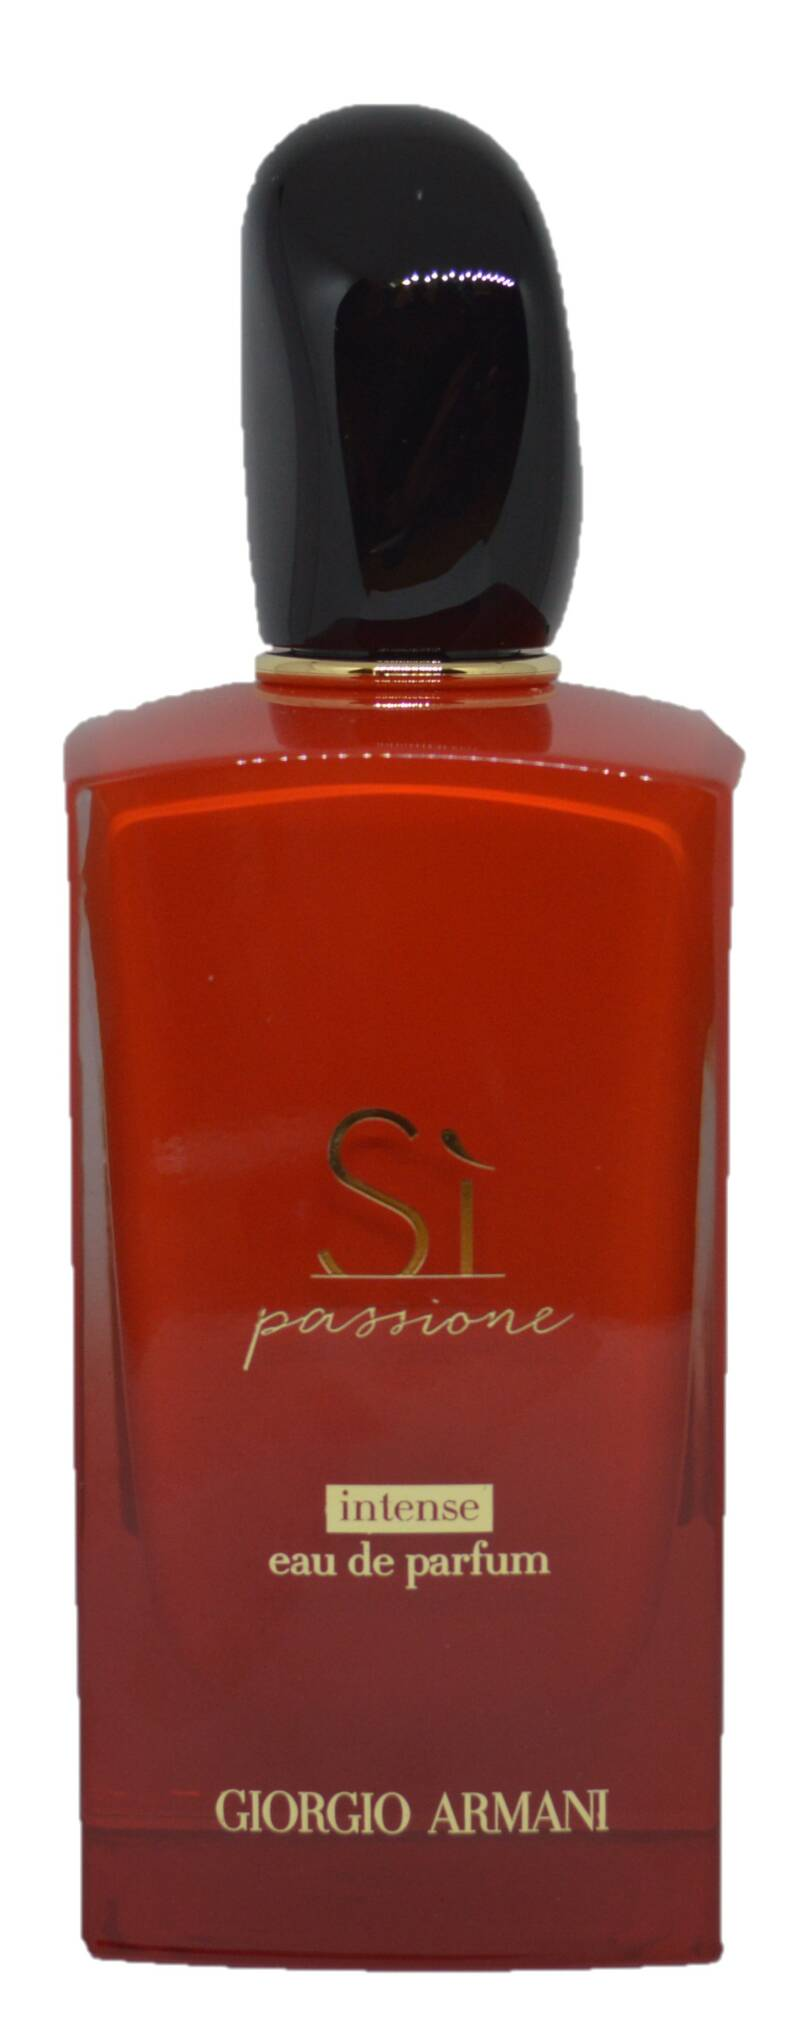 Sì Passione Intense 50ml